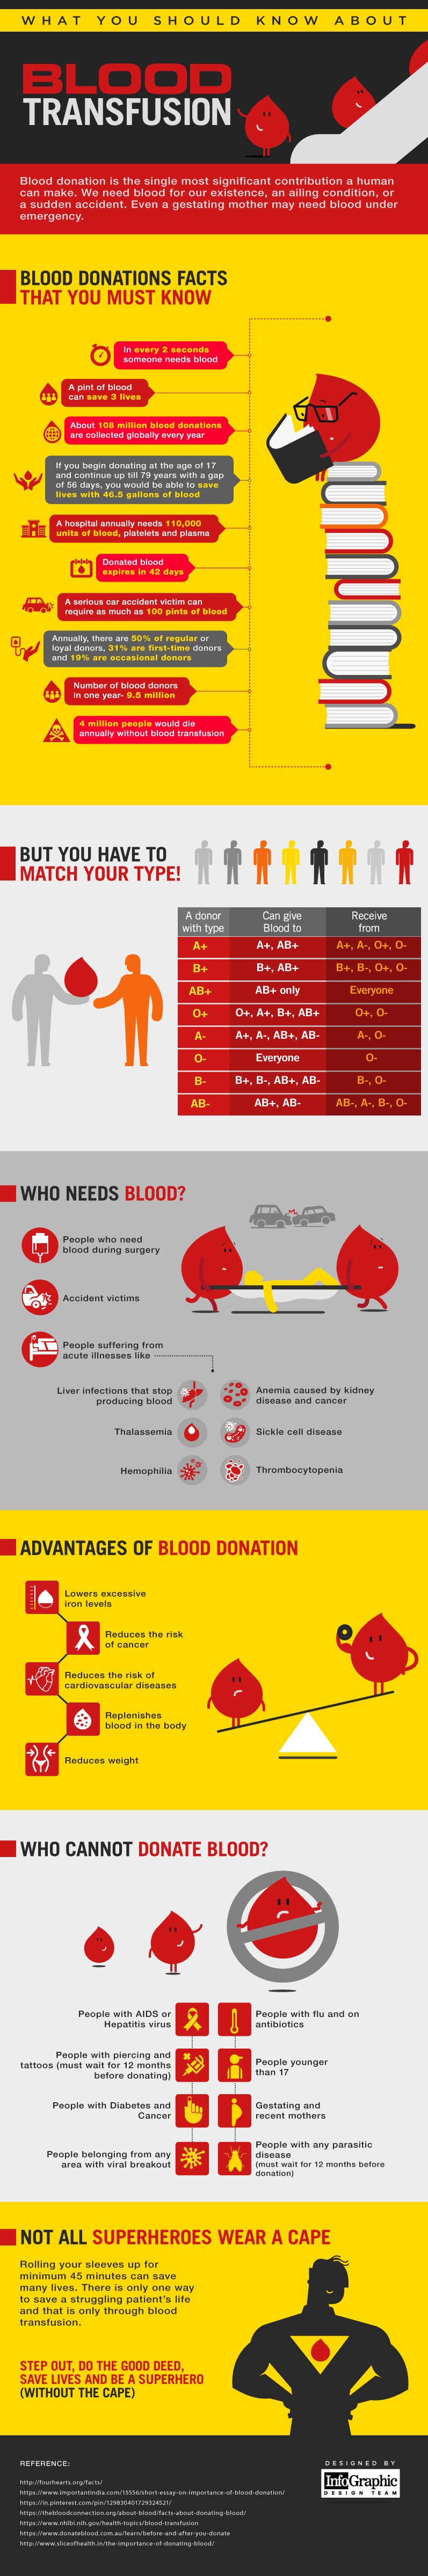 The Heroic Act of Blood Donation: Critical Facts - Infographic